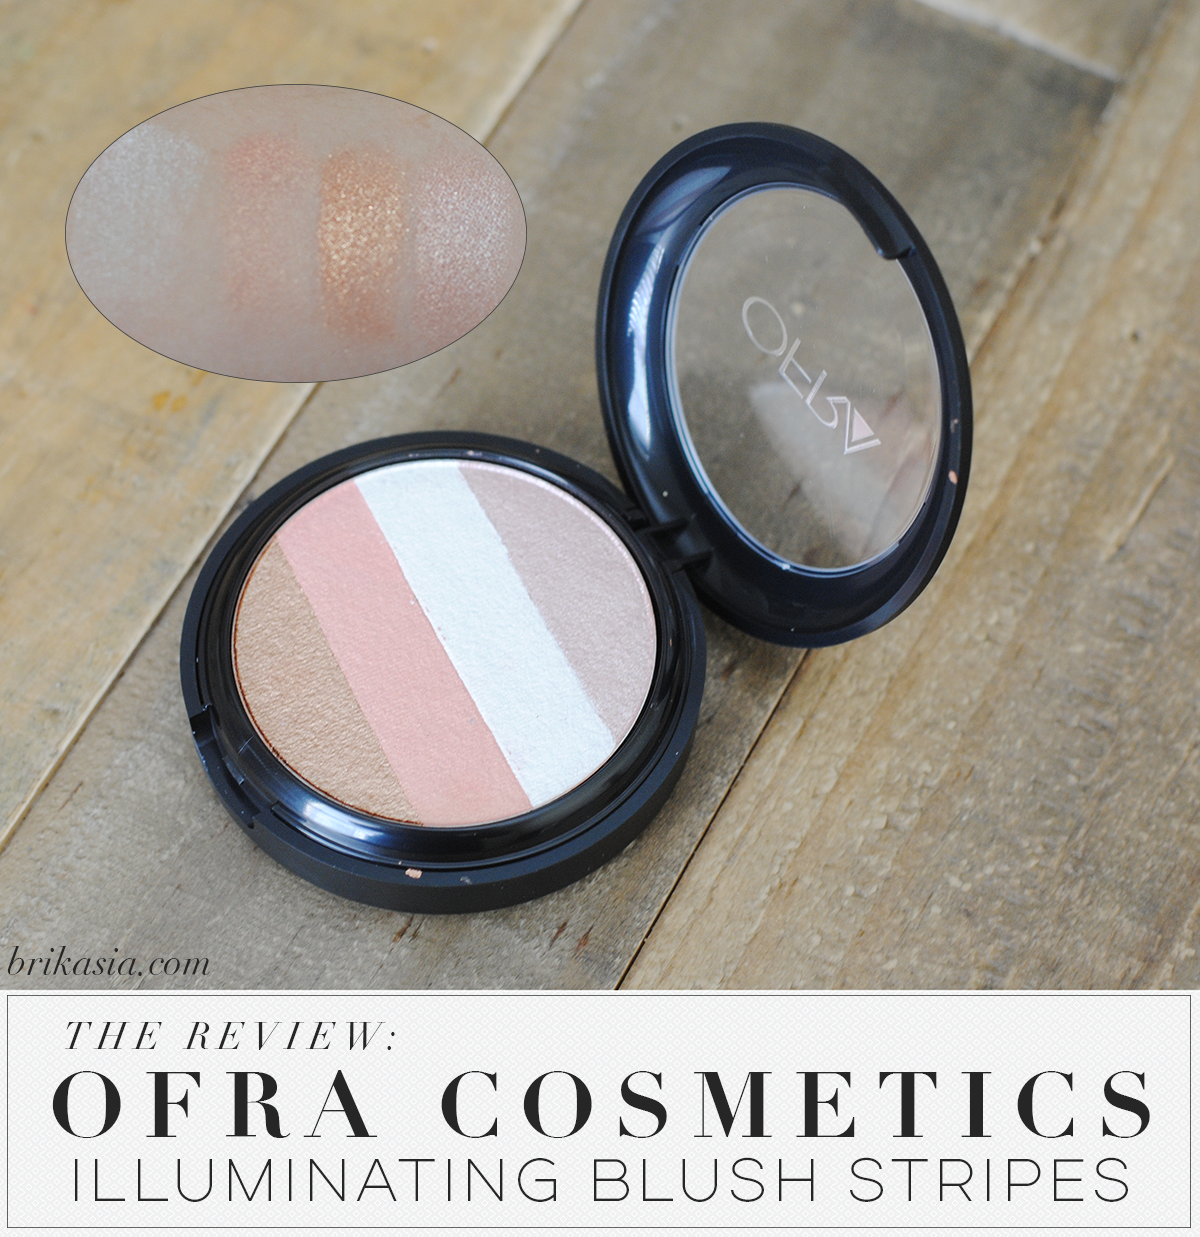 ofra cosmetics illuminating blush stripes, highlighters for oily skin,